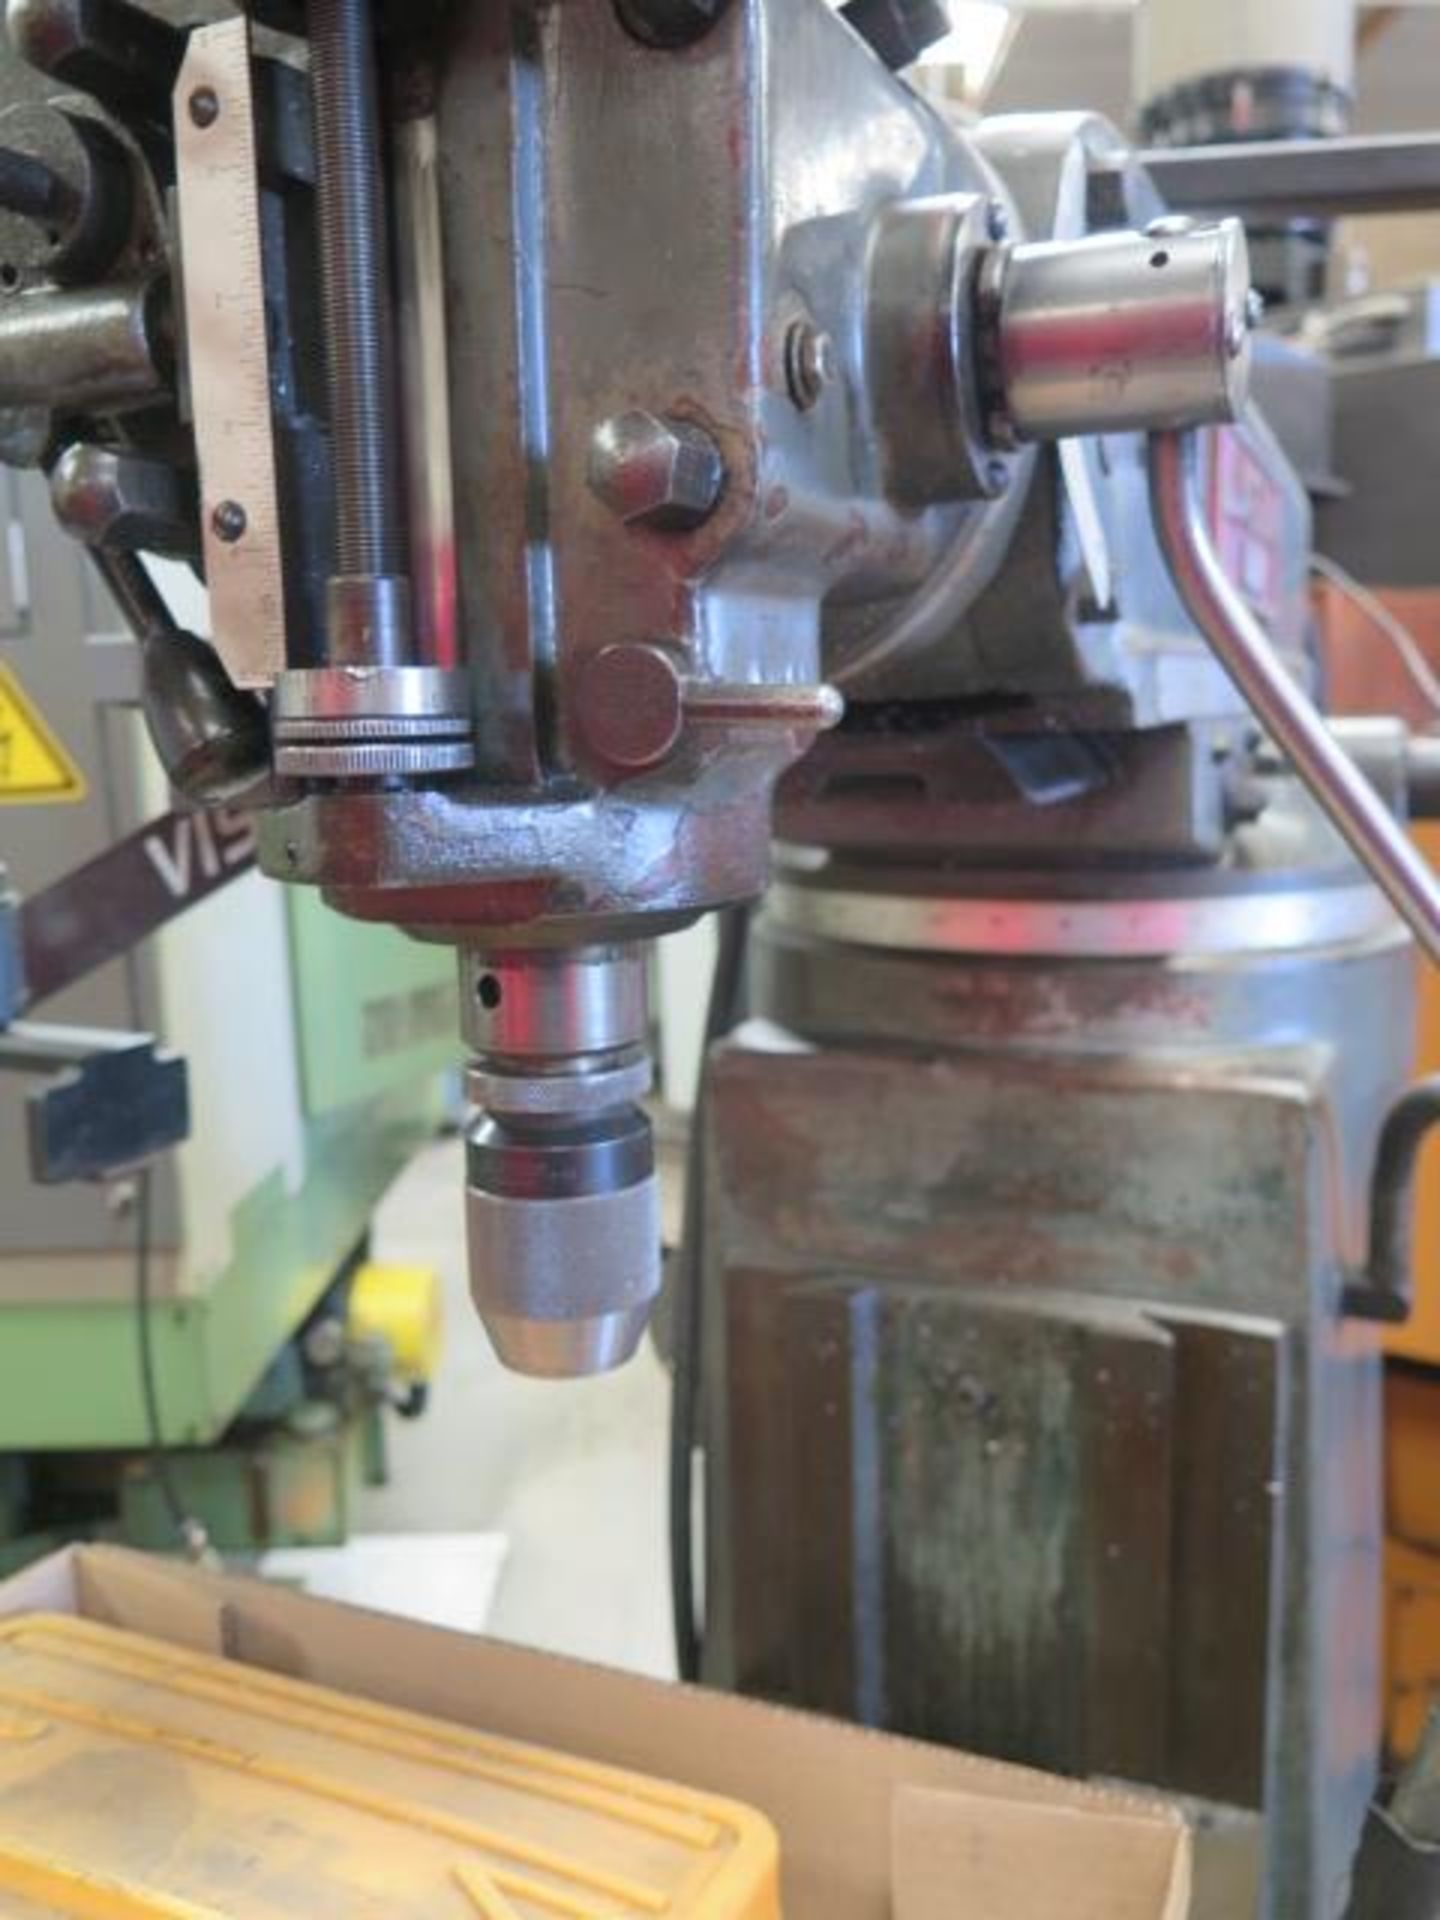 """Lagun FT-1 Vertical Mill w/ Mitutoyo DRO, 55-2940 RPM, 8-Speeds, Power Feed, 9"""" x 42"""" Table (SOLD - Image 9 of 14"""